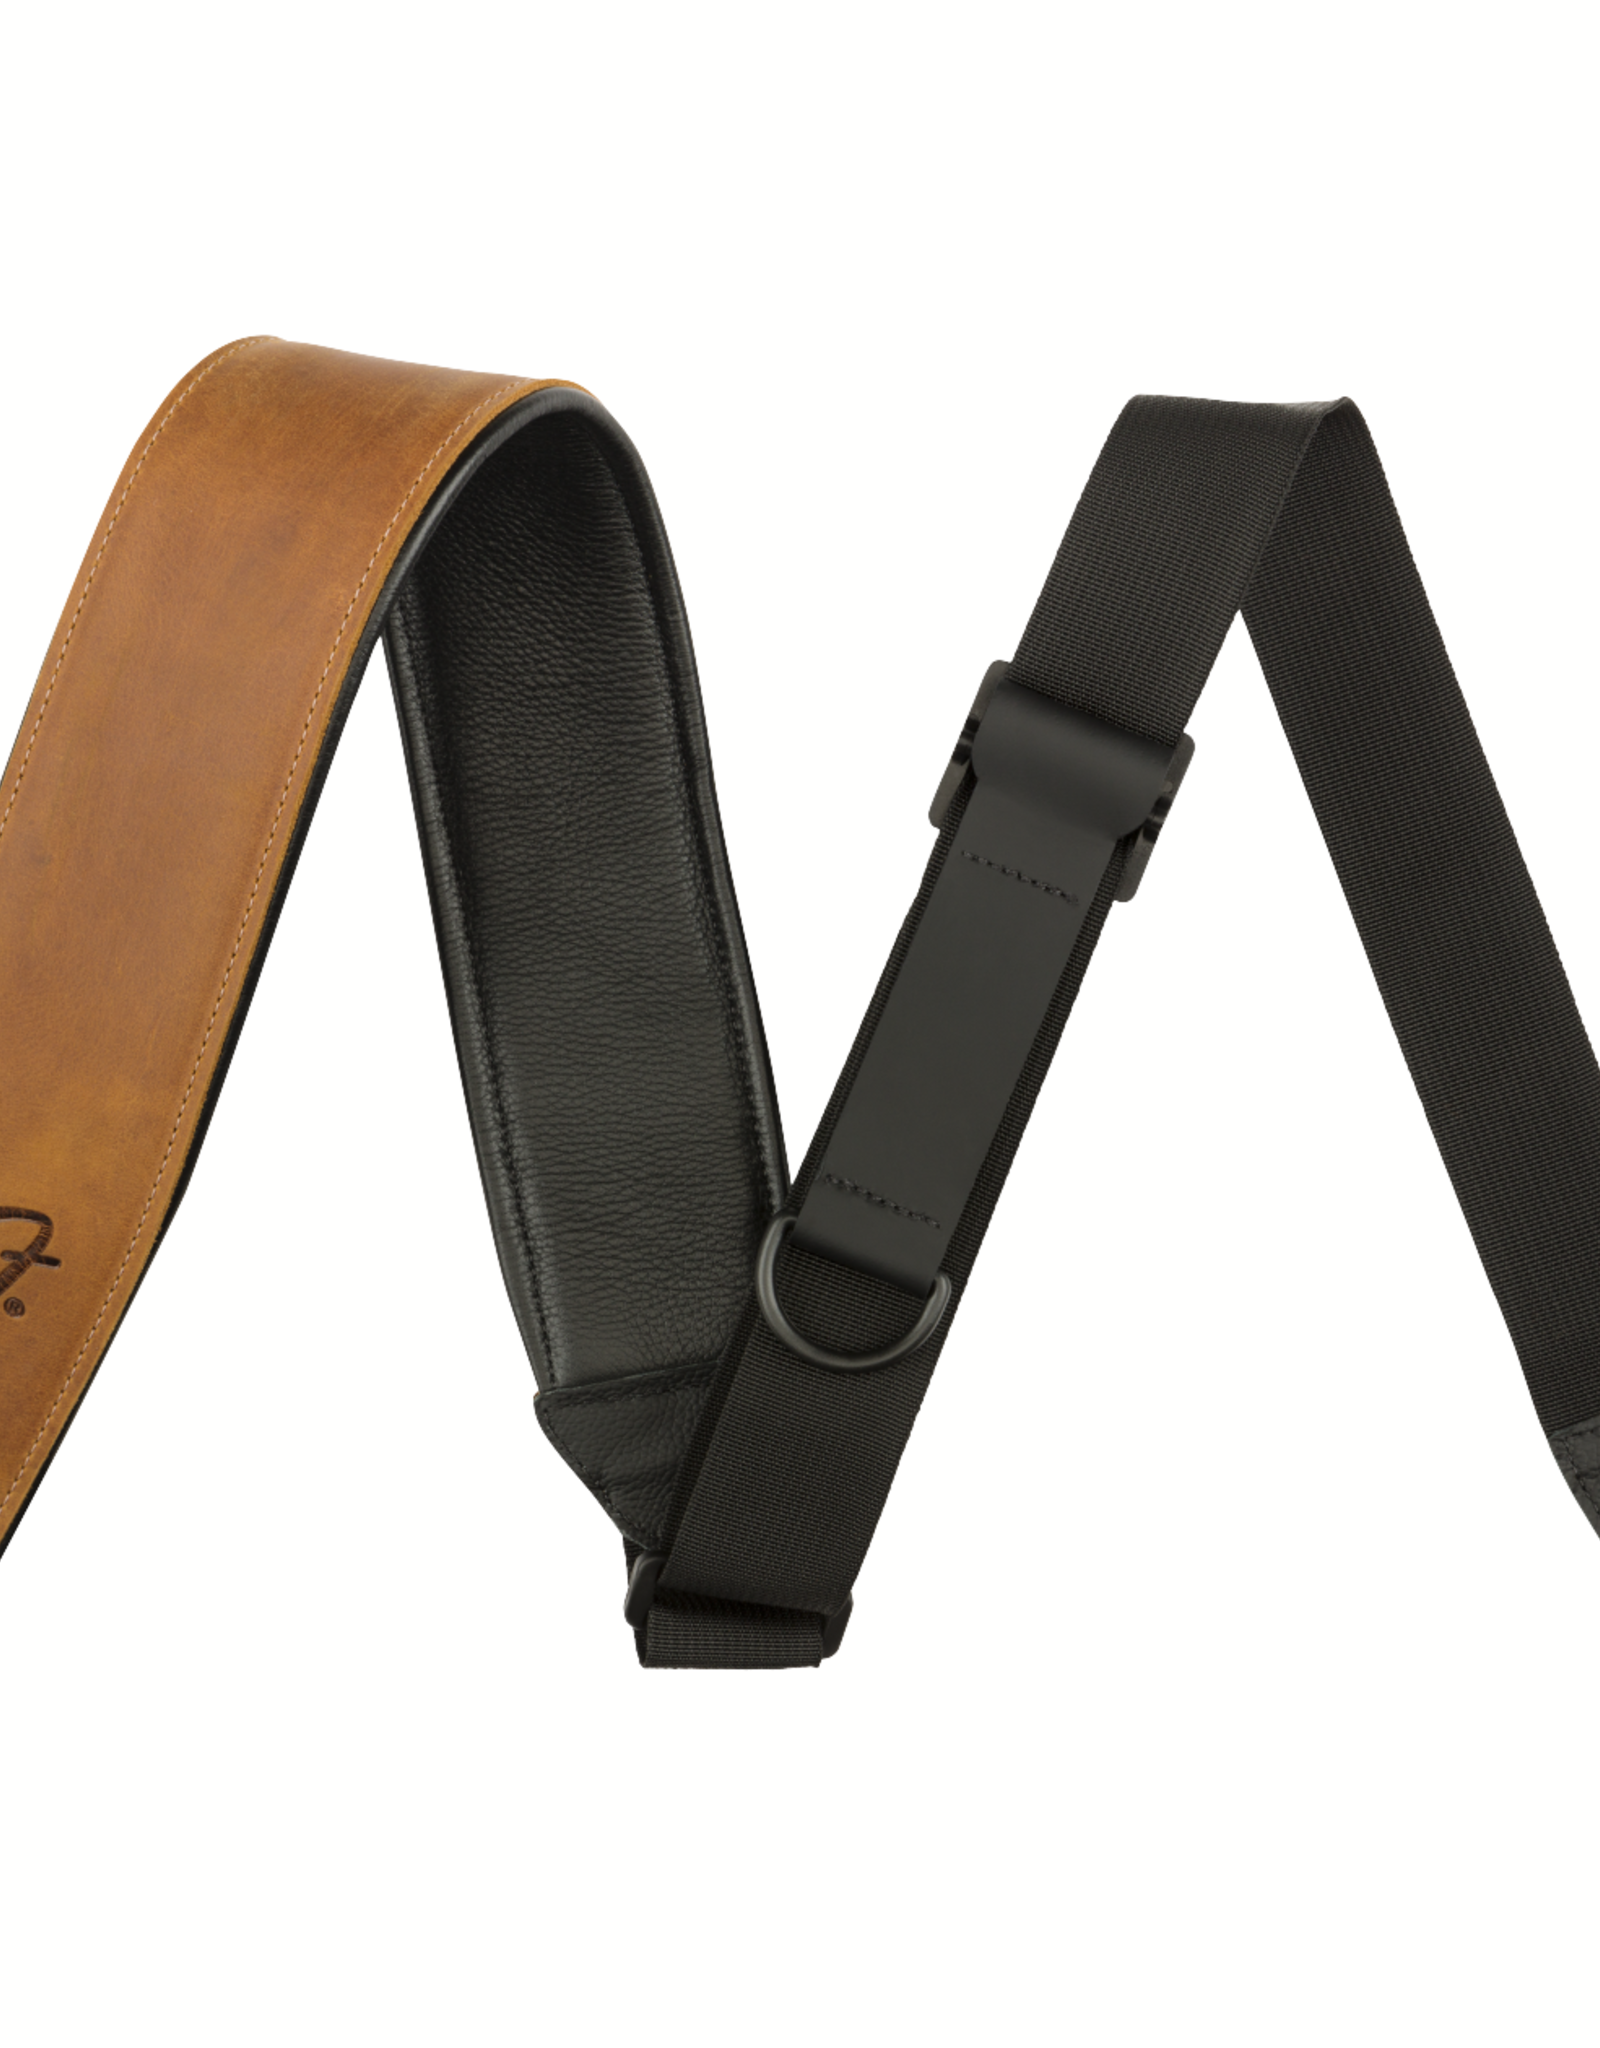 Fender Fender Right Height Leather Strap, Cognac